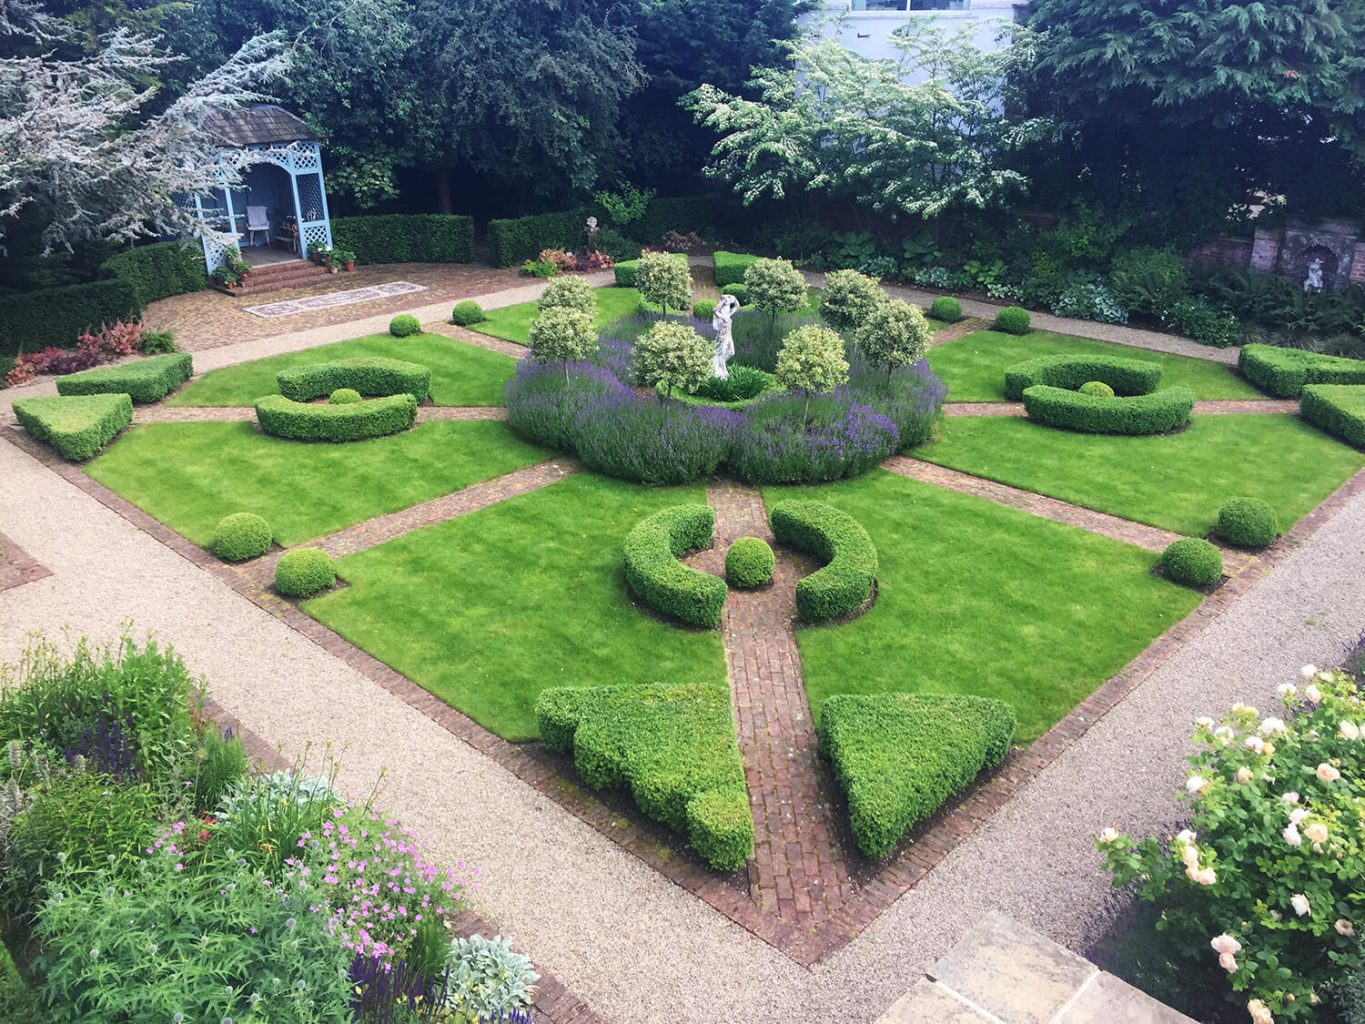 Working with Helen Taylor to create a classic parterre garden